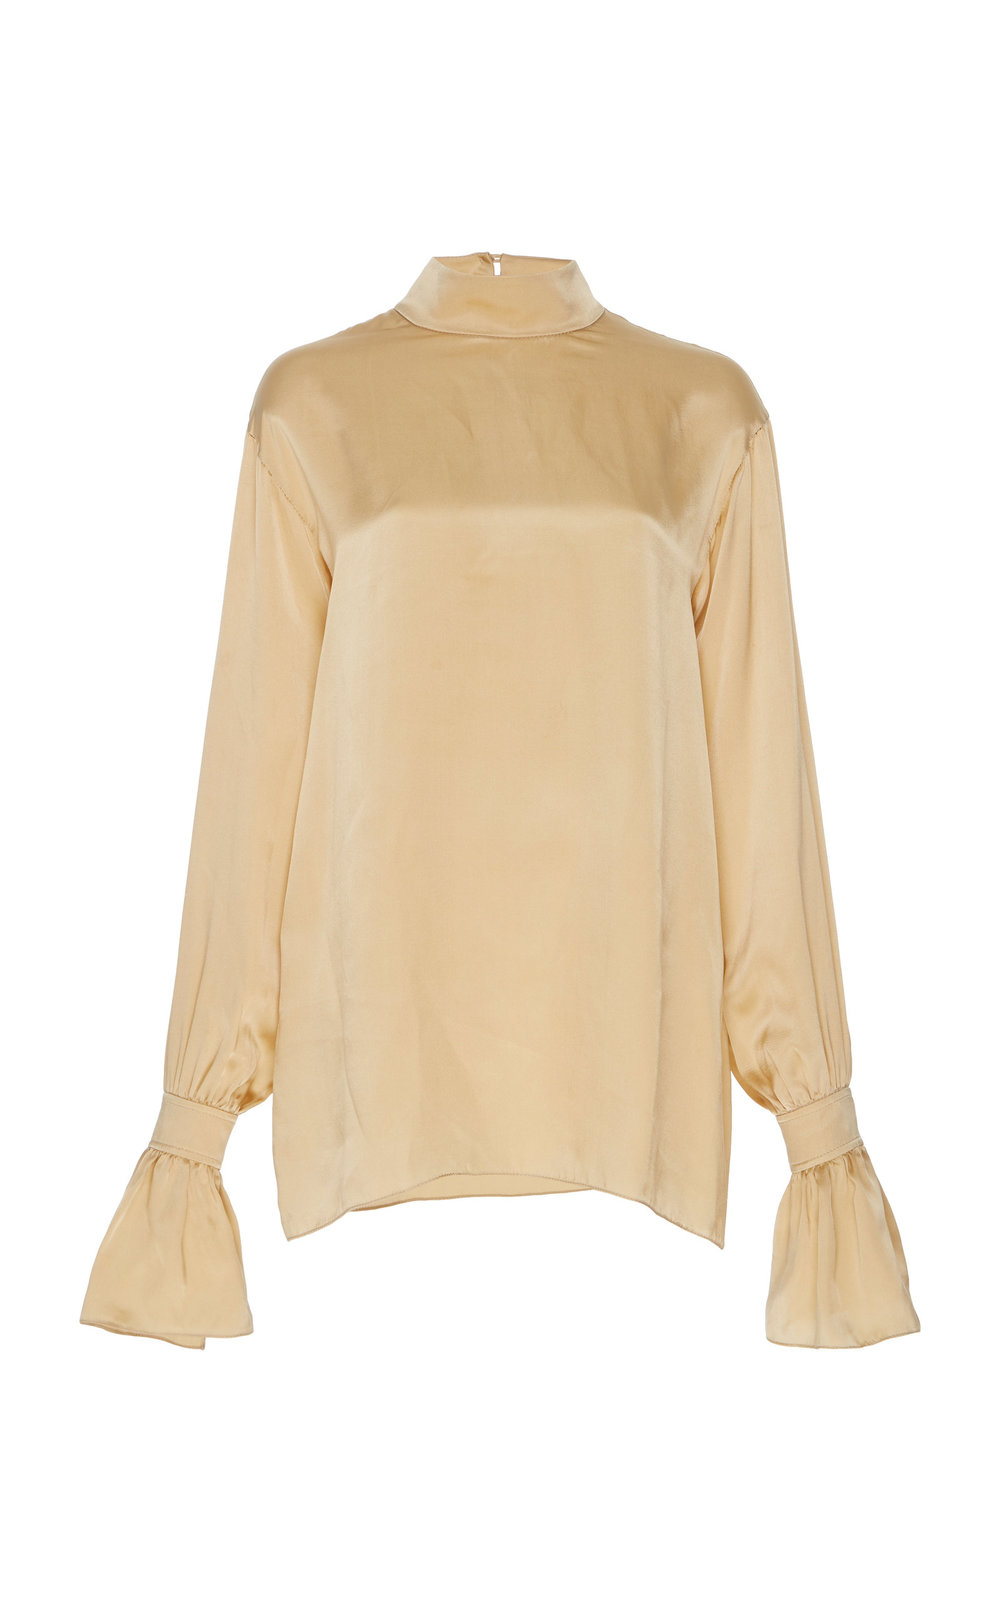 Lantana Silk Jacquard Blouse - GOLD  A perfect Silk top with a relaxed fit and turtle neckline. The minimalistic shape is easy to dress and suits every occasion.